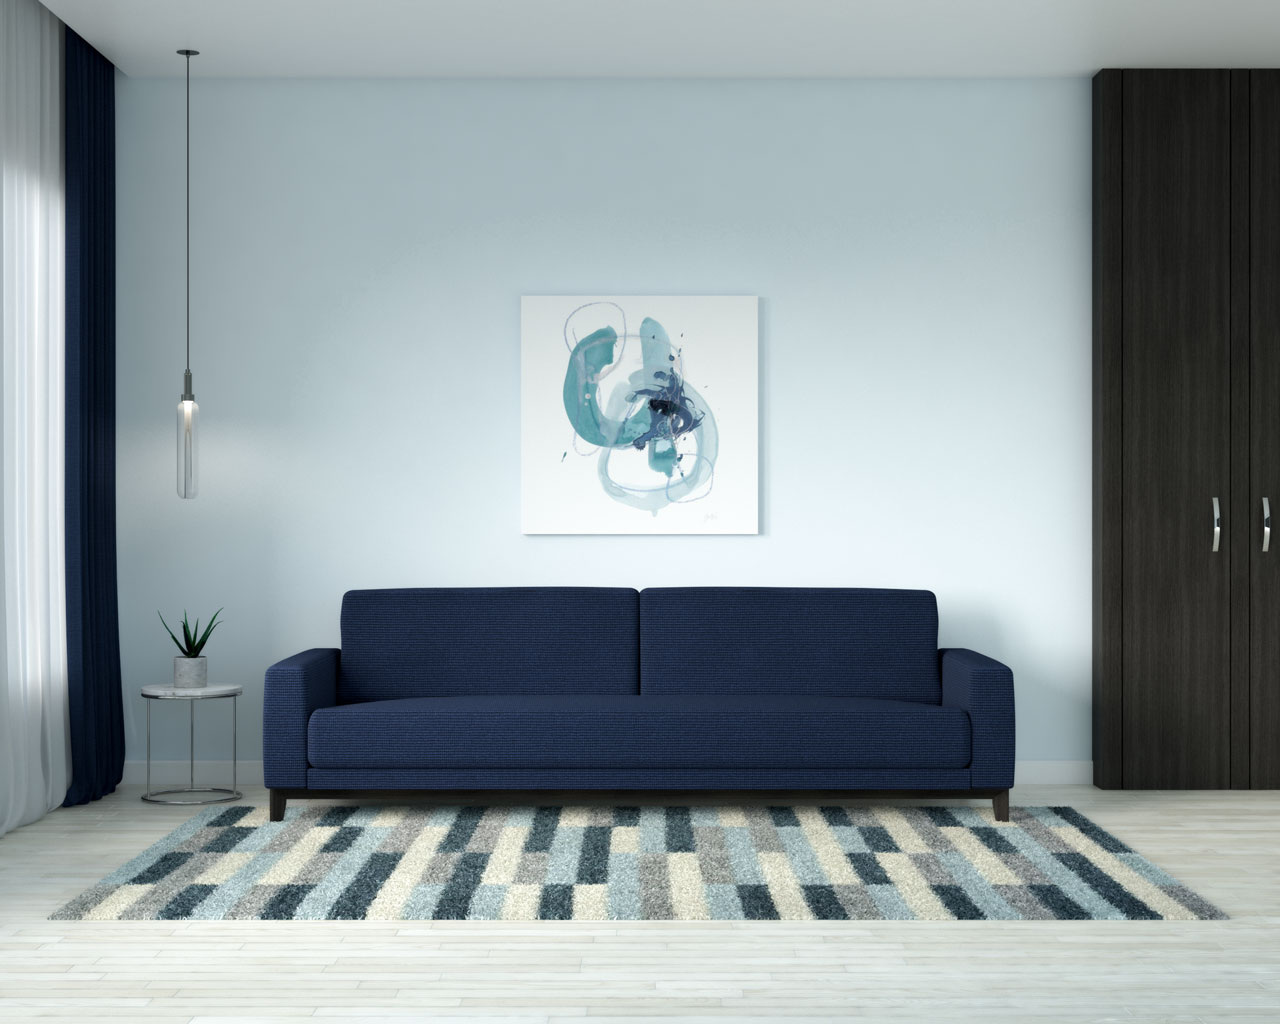 Sky blue walls with navy couch